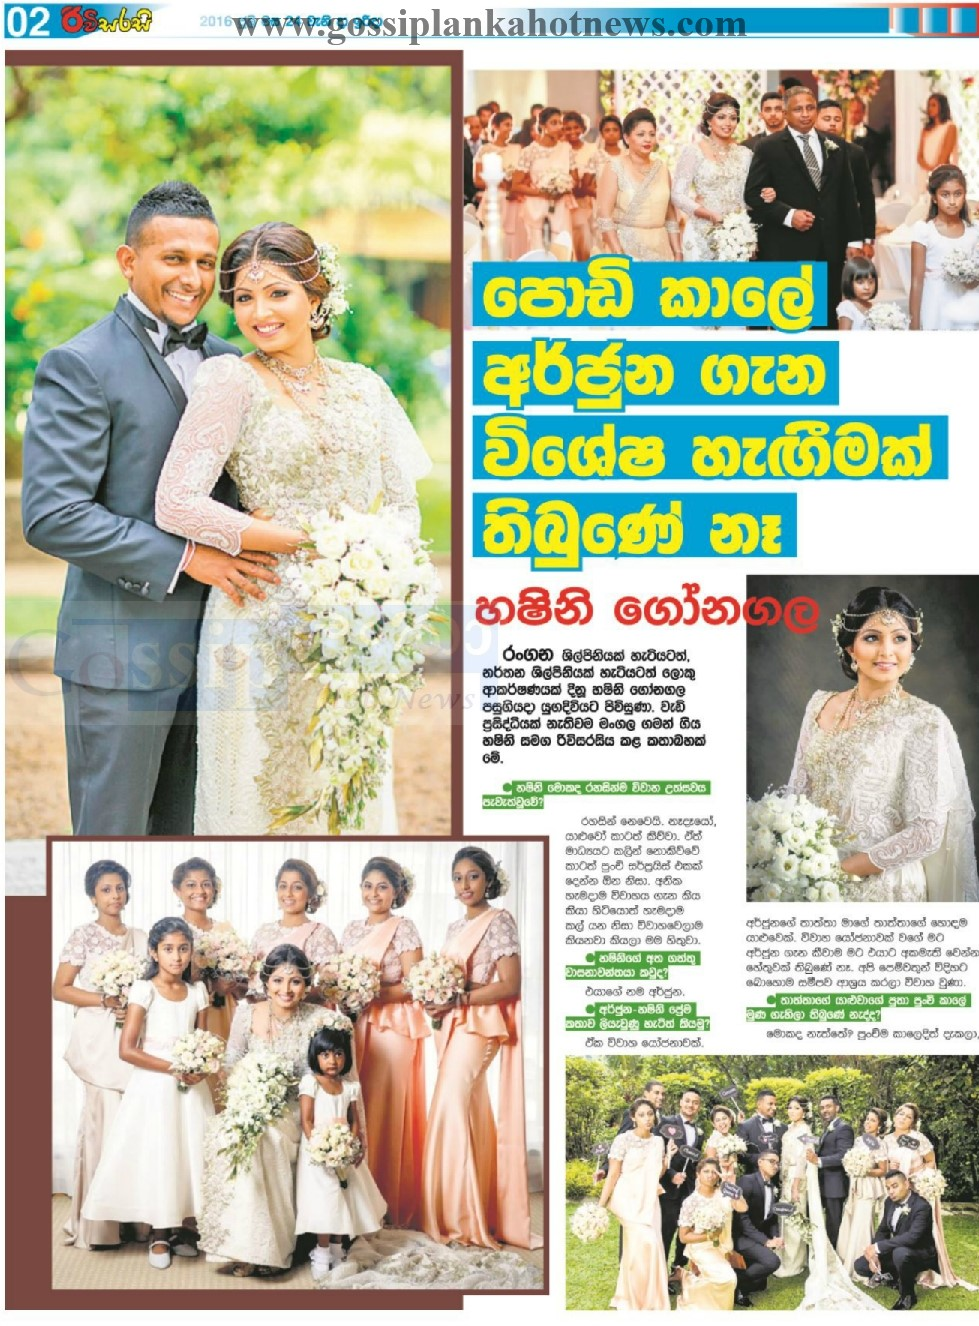 Gossip Chat With Hashini Gonagala - Gossip Lanka News